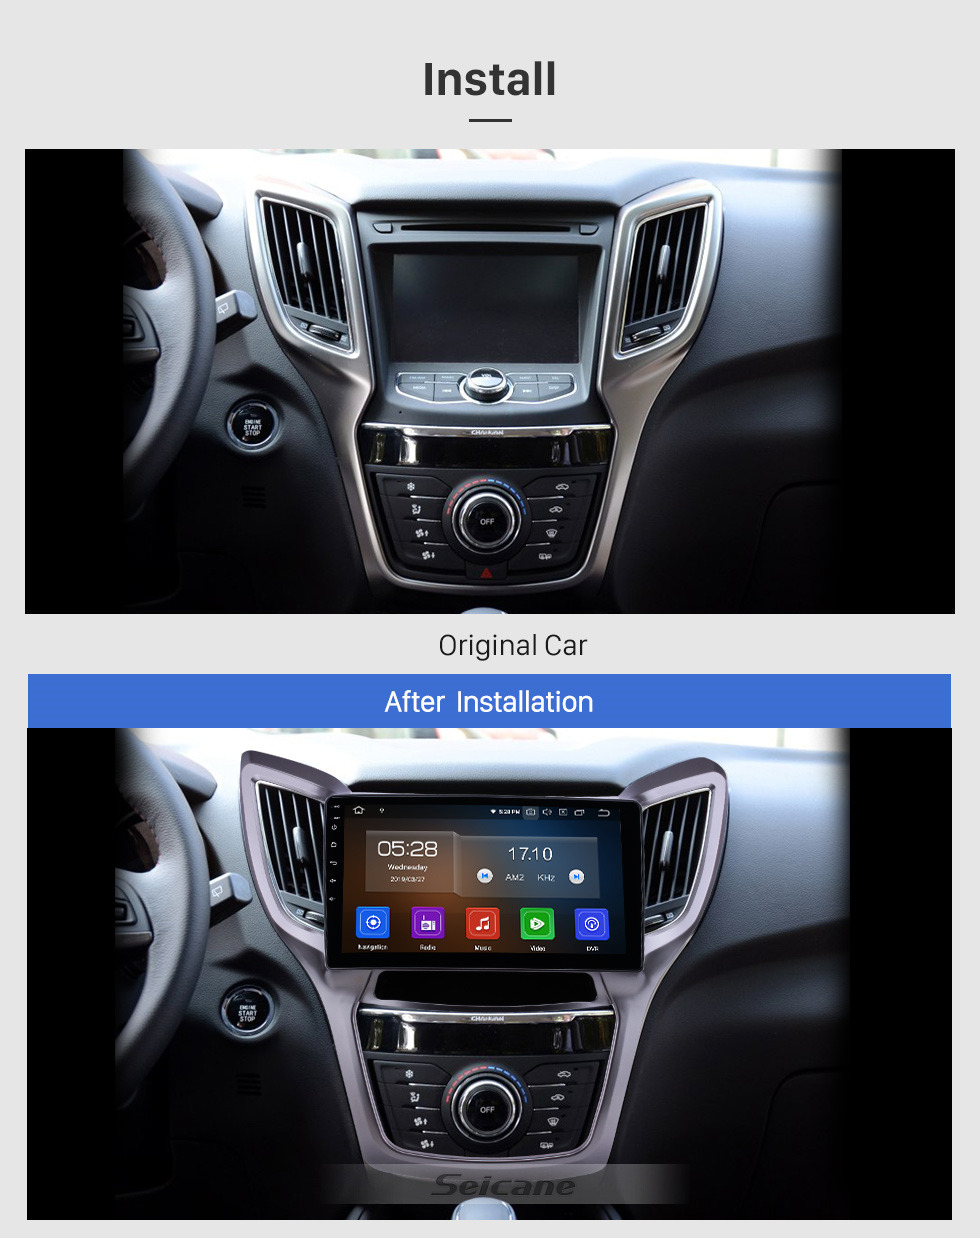 Seicane 10.1 pulgadas 2013-2016 Changan CS75 Android 10.0 Navegación GPS Radio Bluetooth HD Pantalla táctil AUX USB WIFI Carplay soporte OBD2 1080P Video